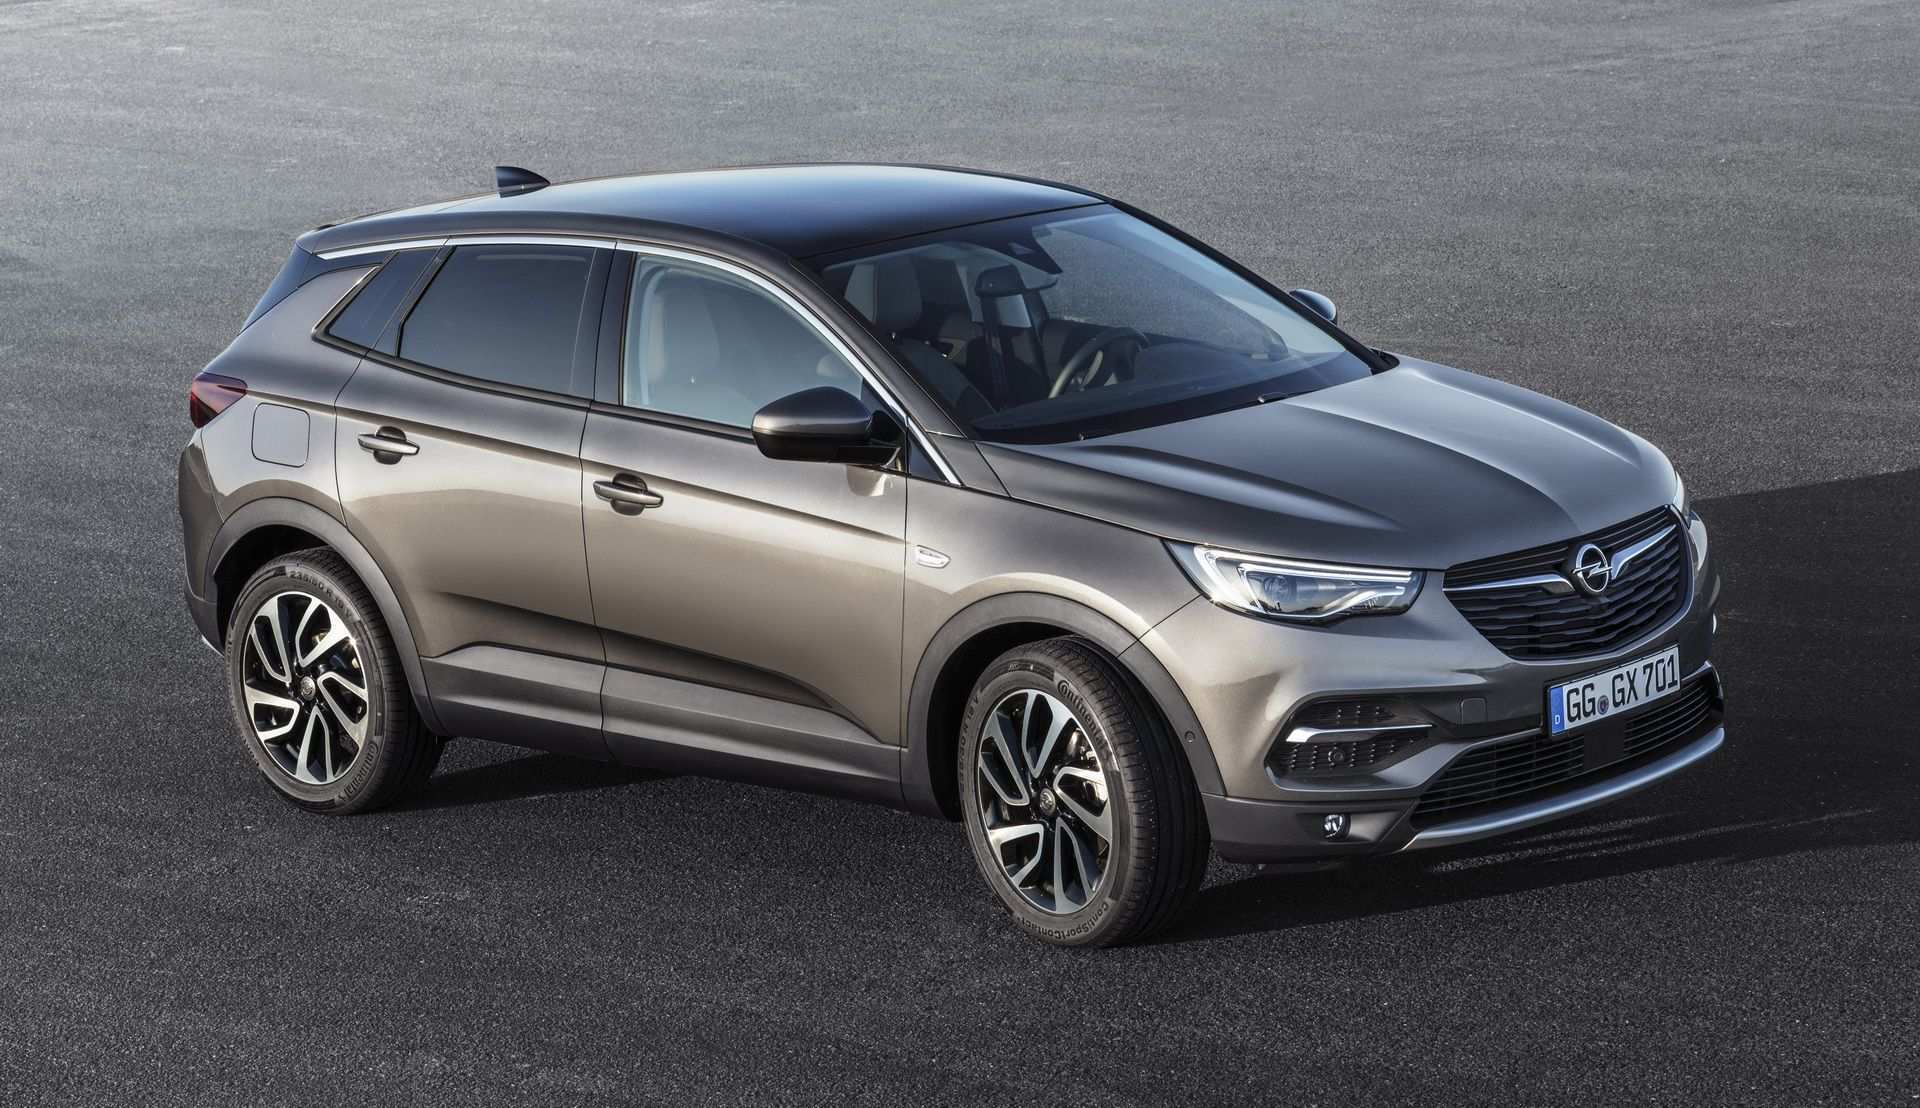 67 The Opel Grandland X Facelift 2020 Pricing